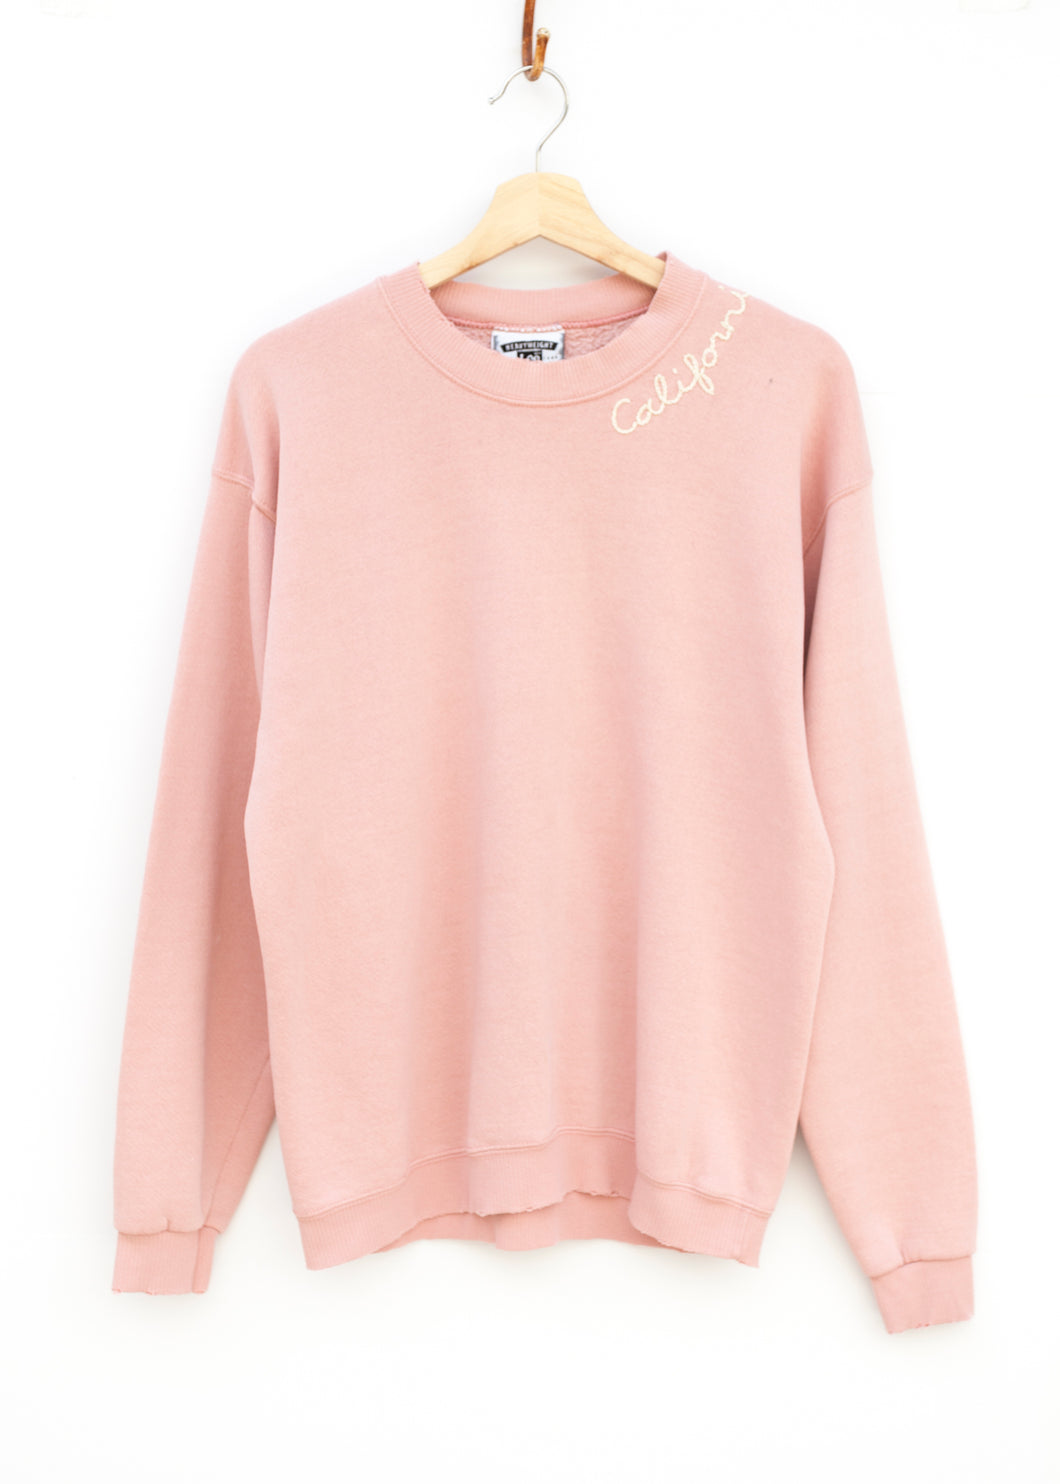 California Sweatshirt - Petal Pink